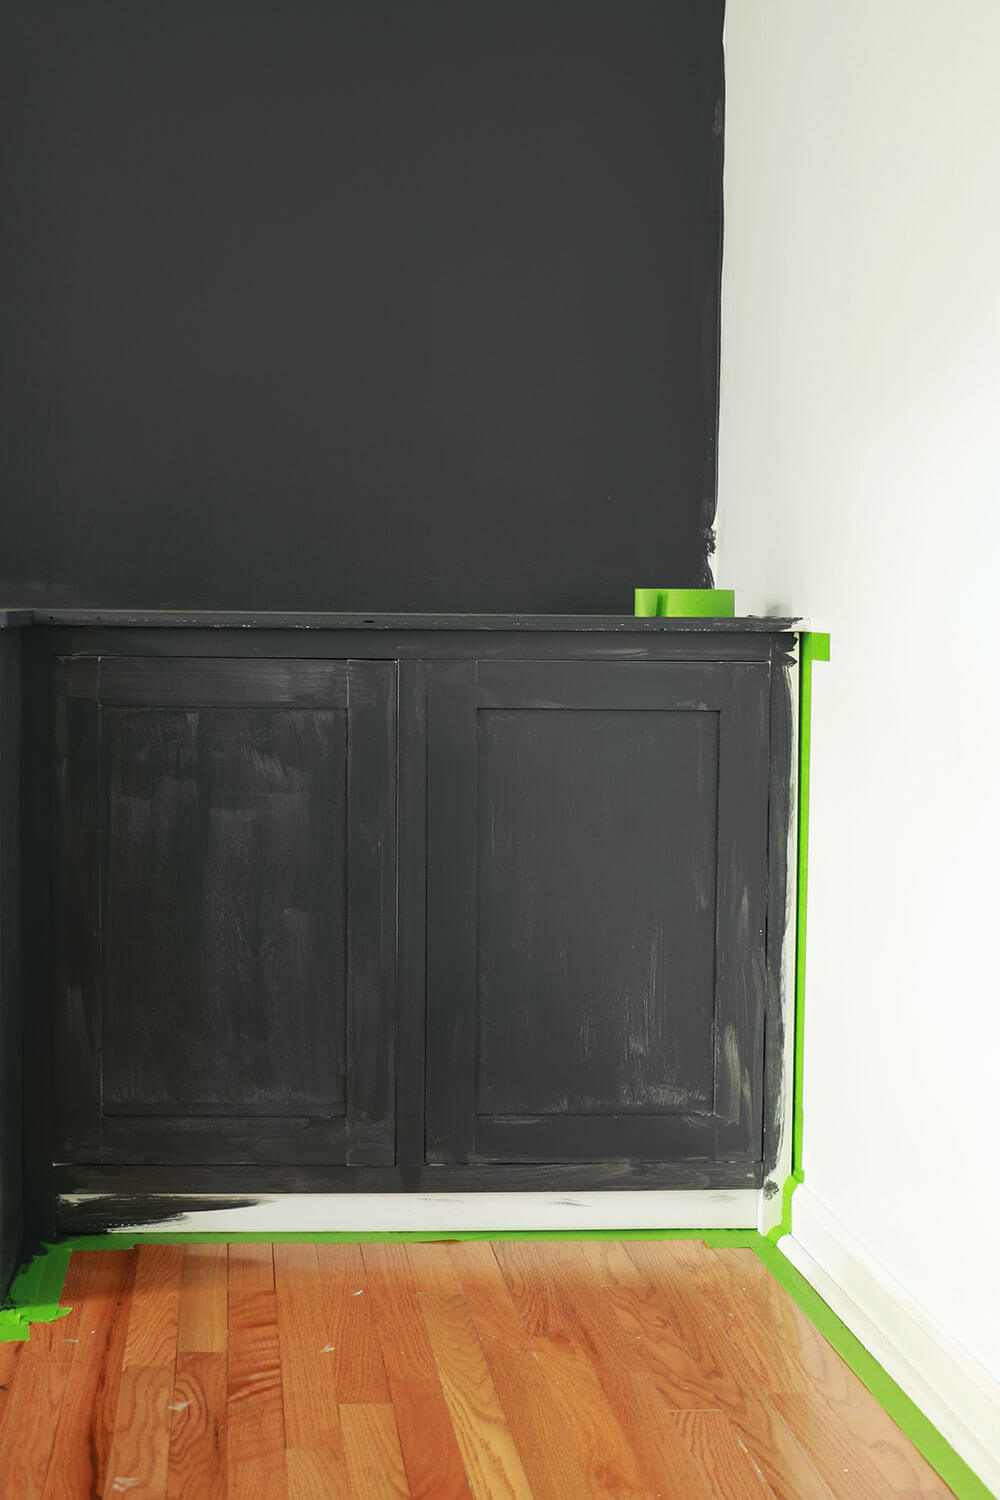 Taping-off-cabinets